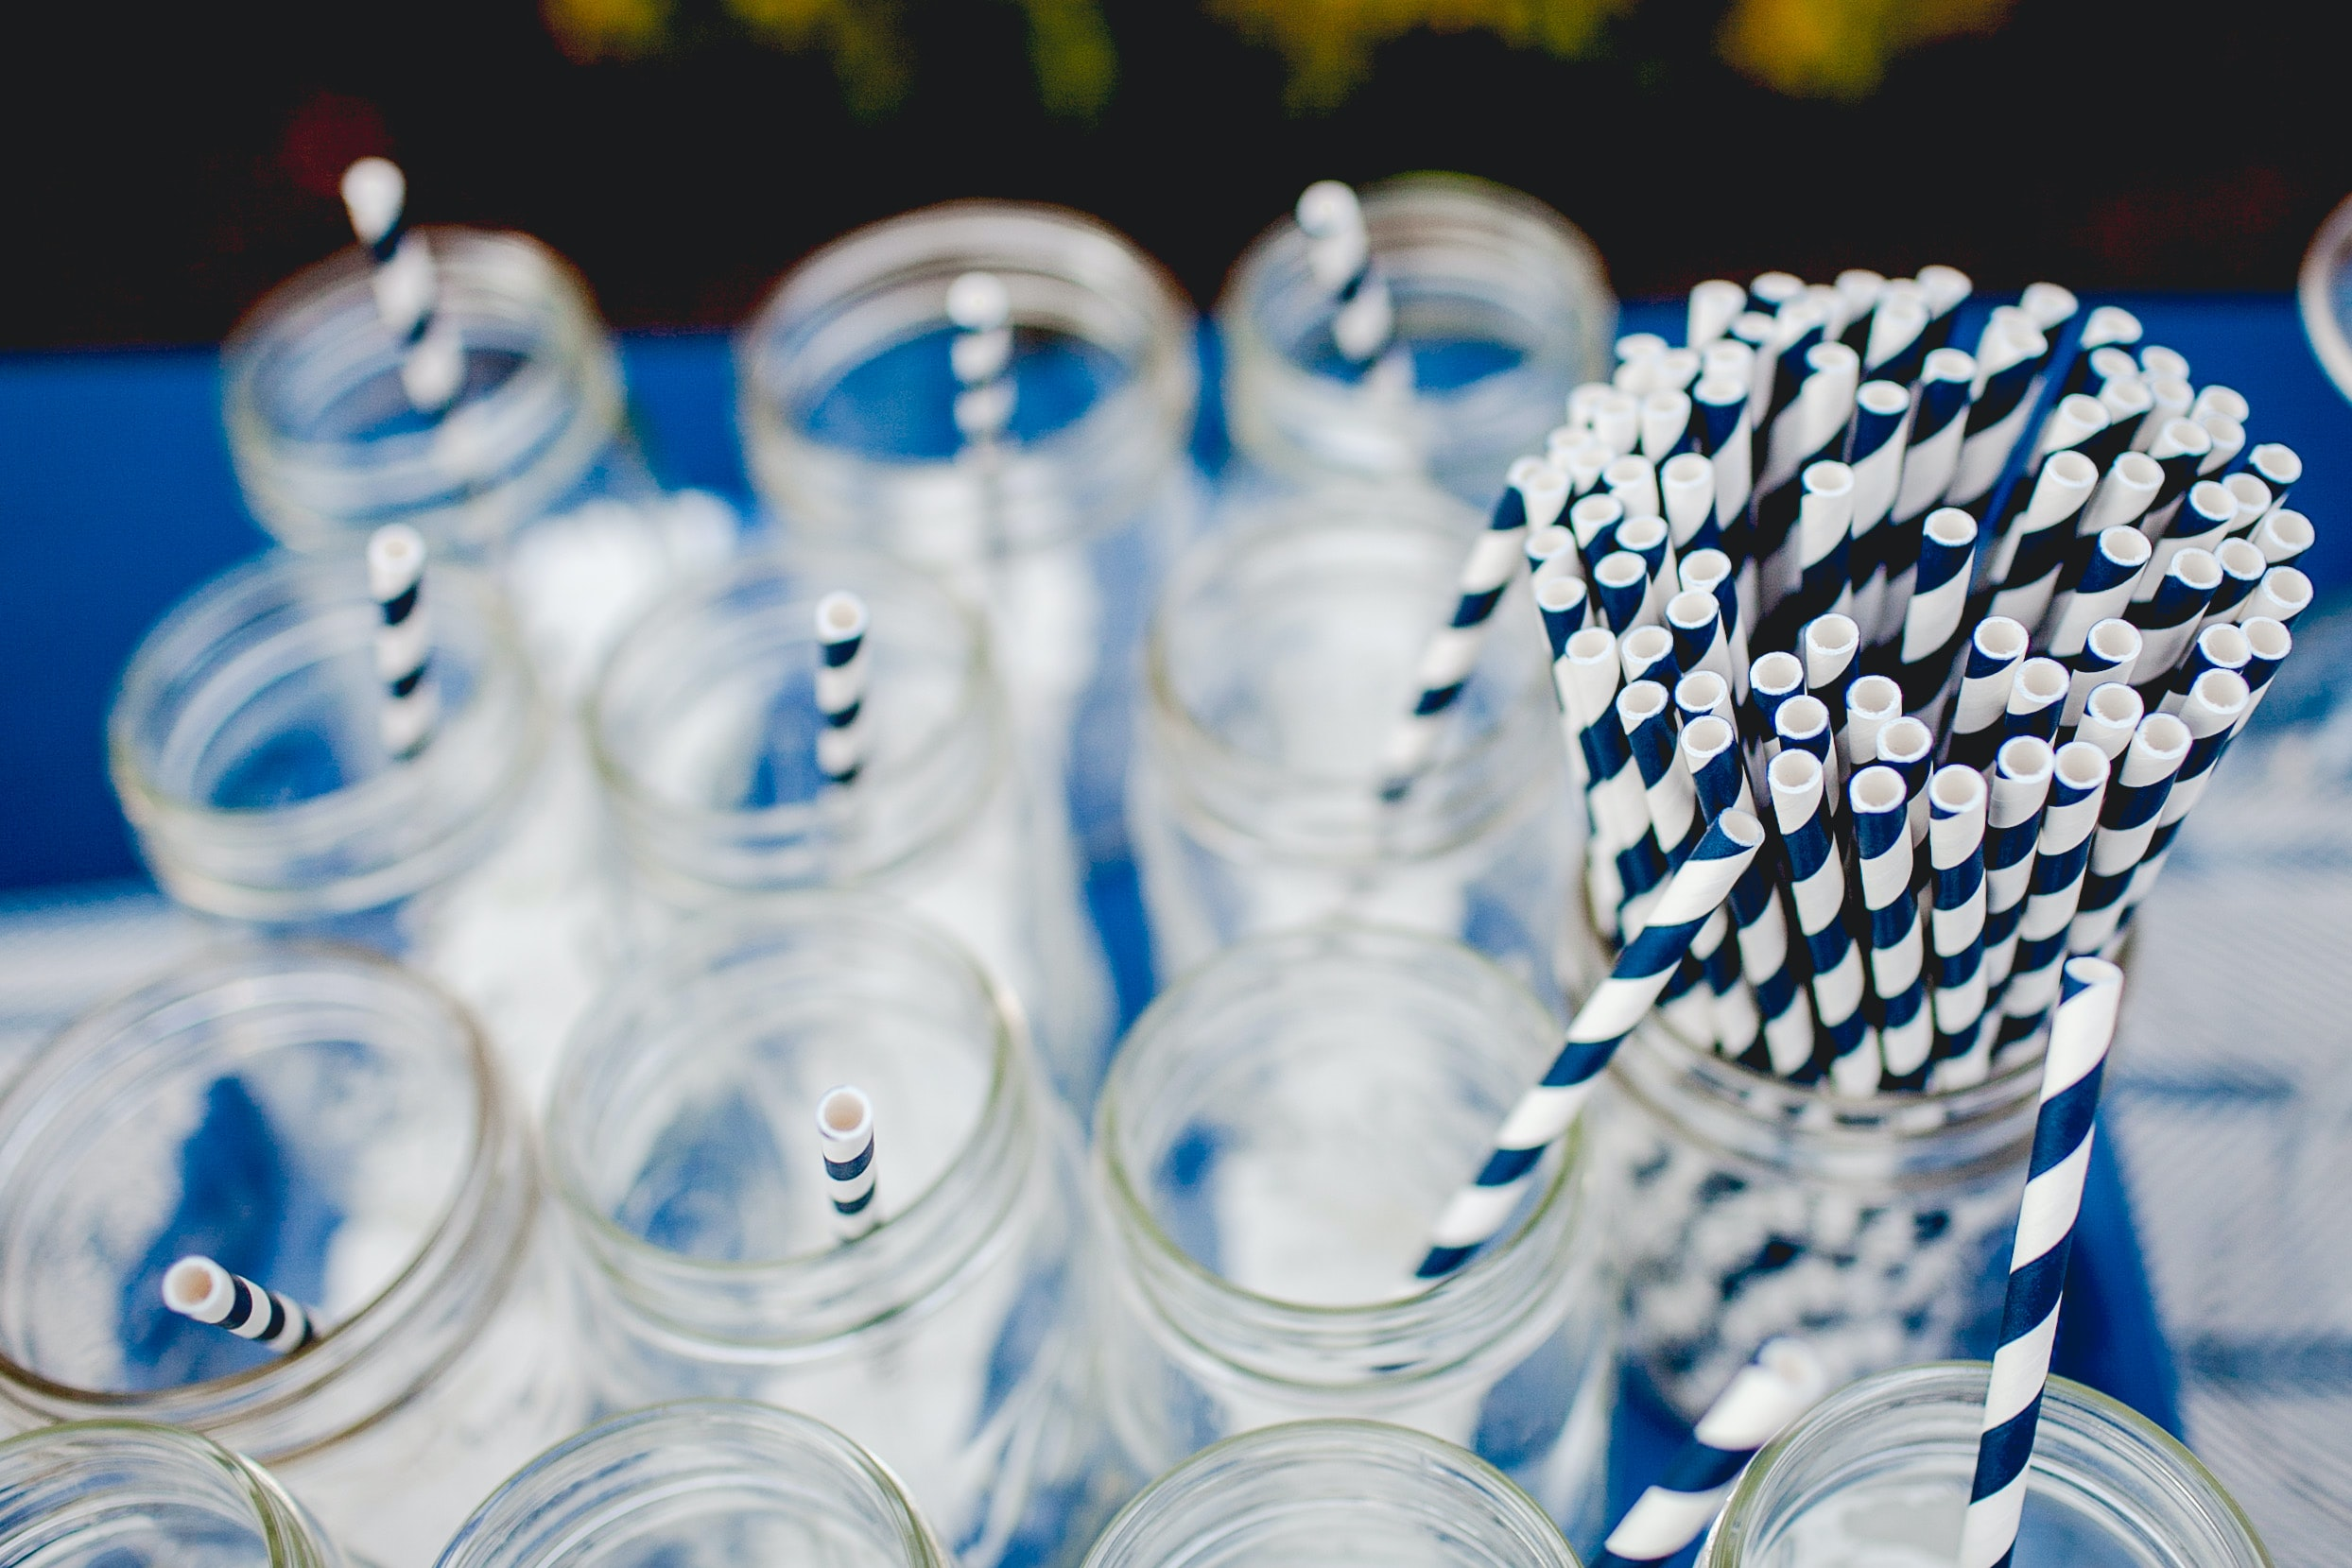 A selection of Mason jars with blue and white striped straws, ahead of a party